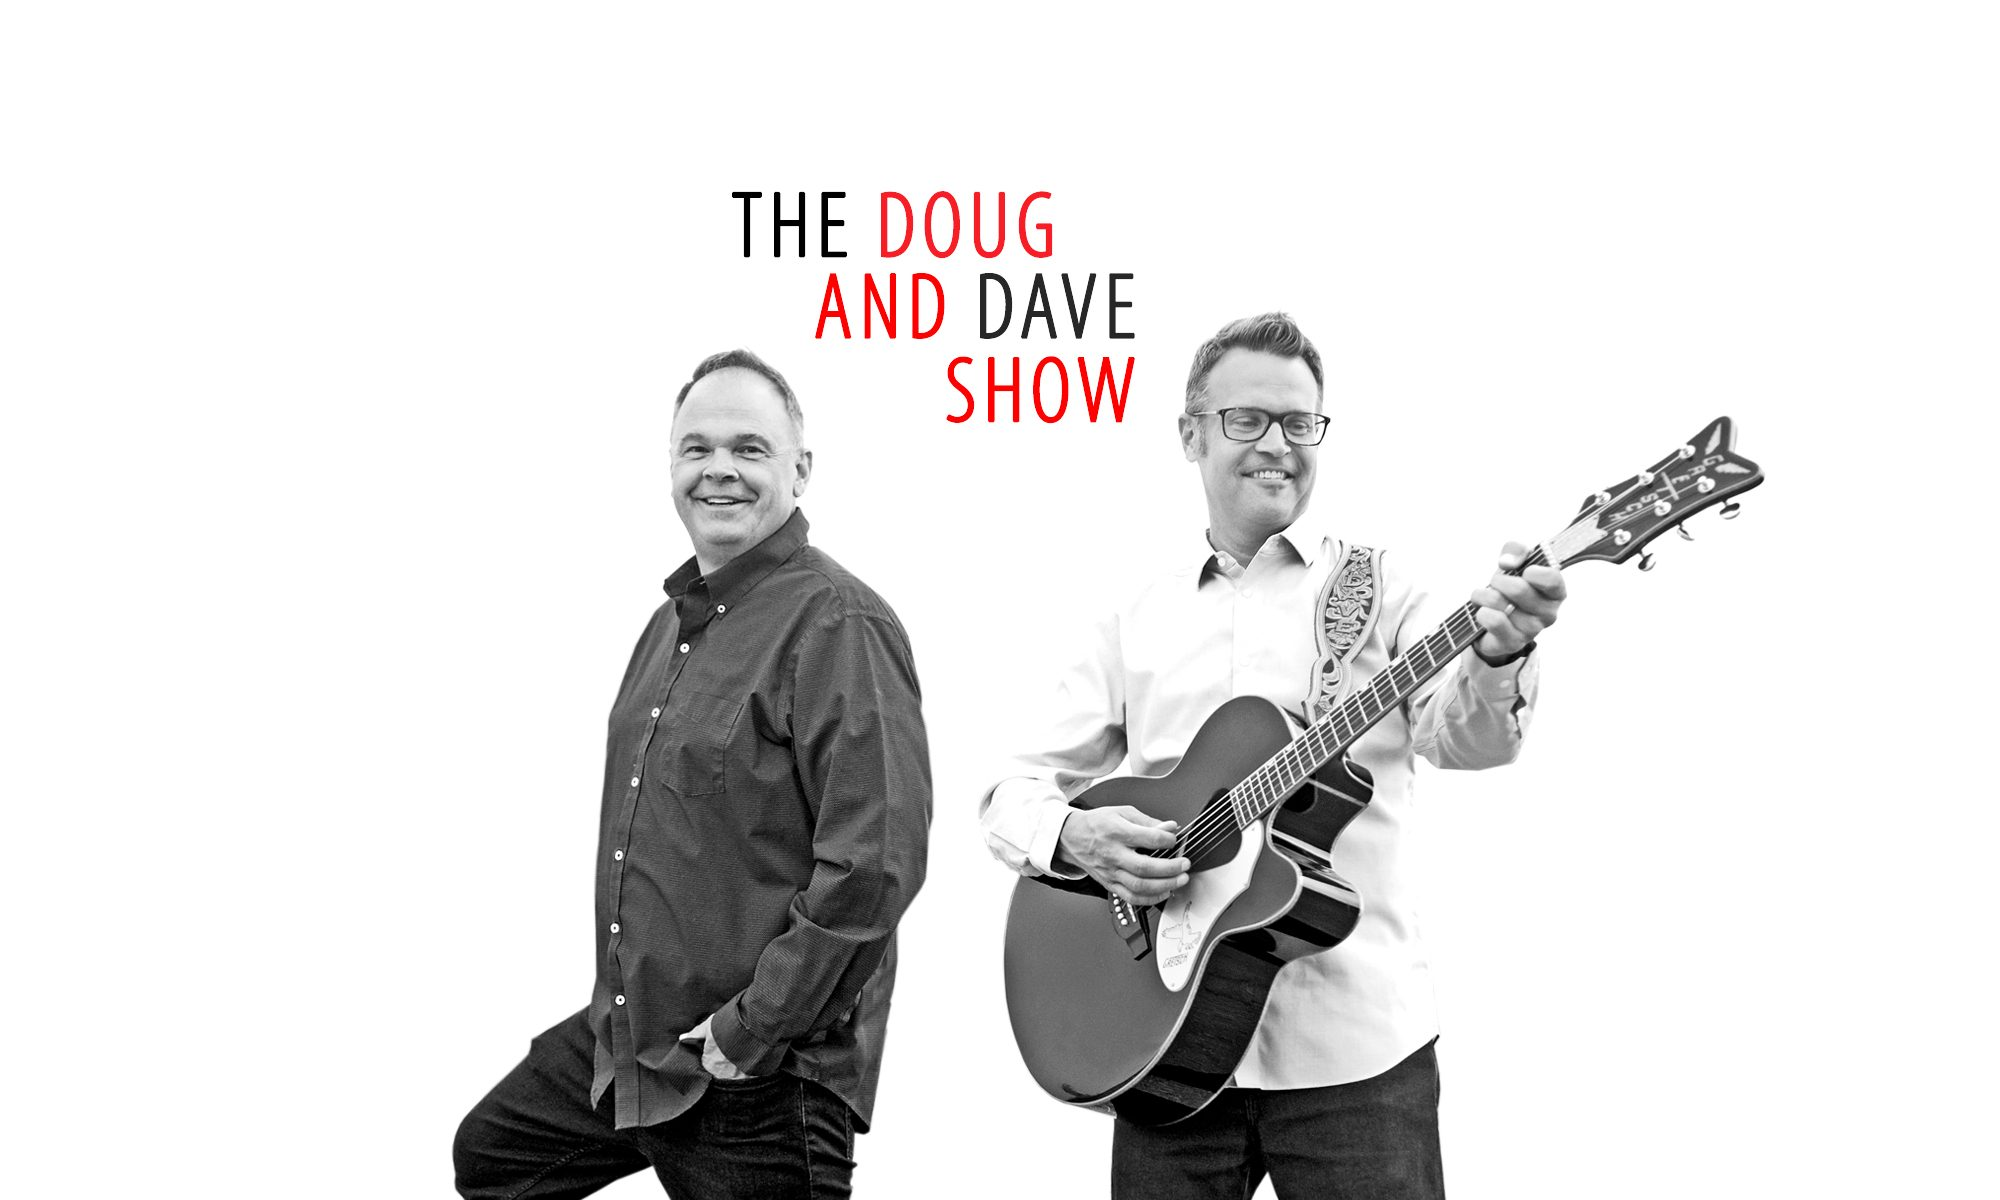 The Doug and Dave Show